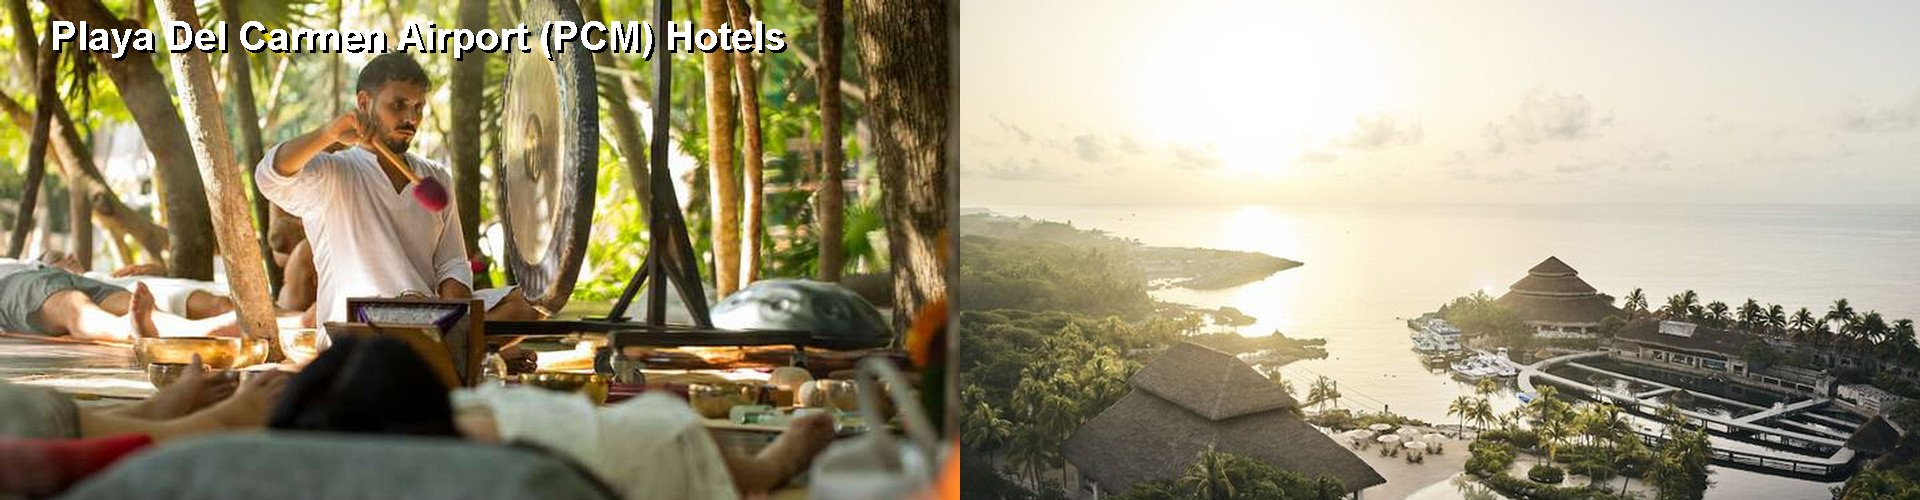 5 Best Hotels near Playa Del Carmen Airport (PCM)